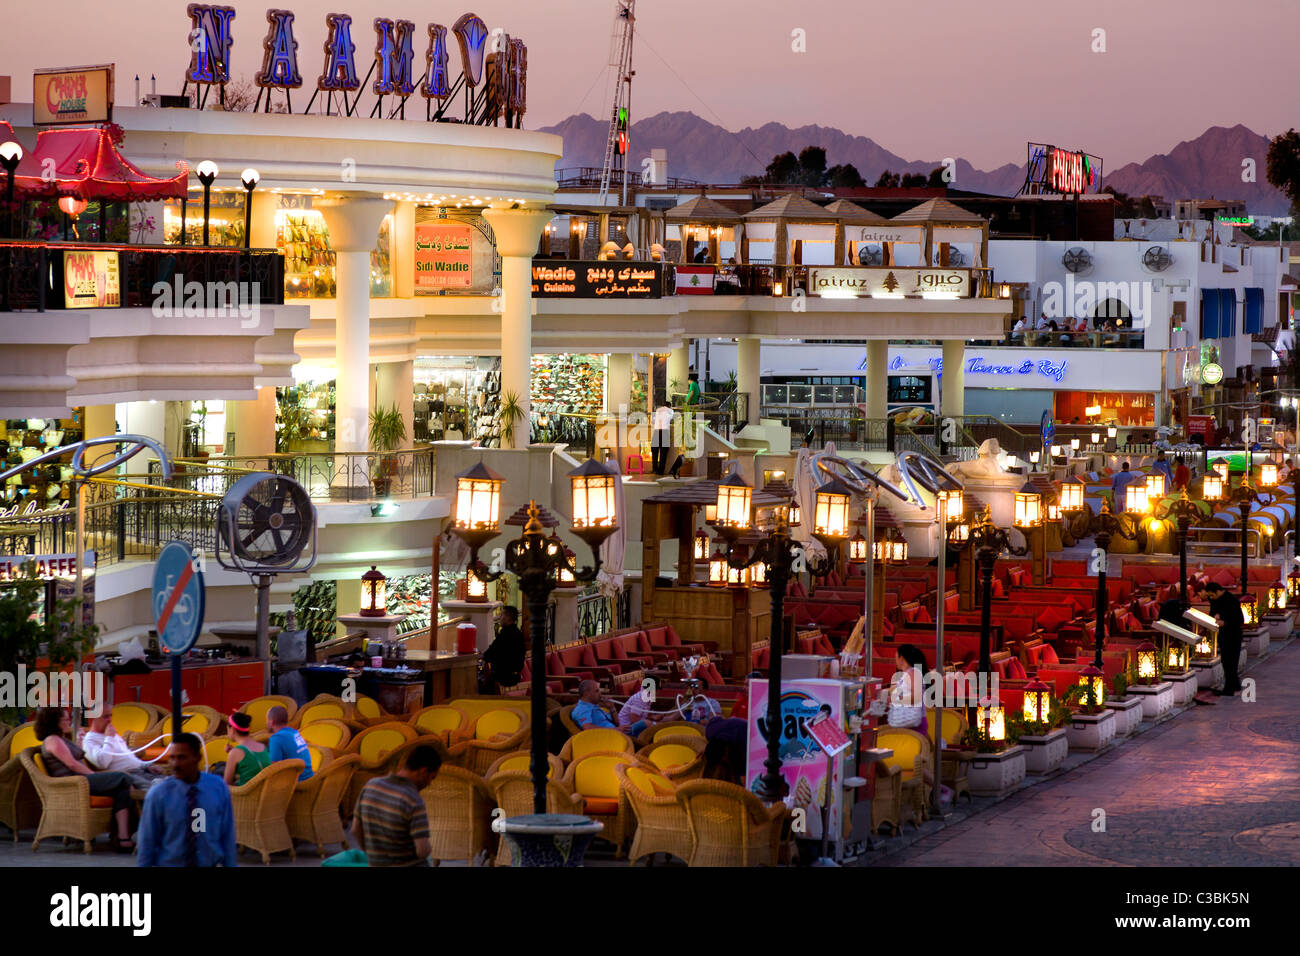 Exterior entrance of the Naama Center shopping mall at Naama Bay, Sharme El Sheik. Egypt on the KING OF BAHRAIN - Stock Image